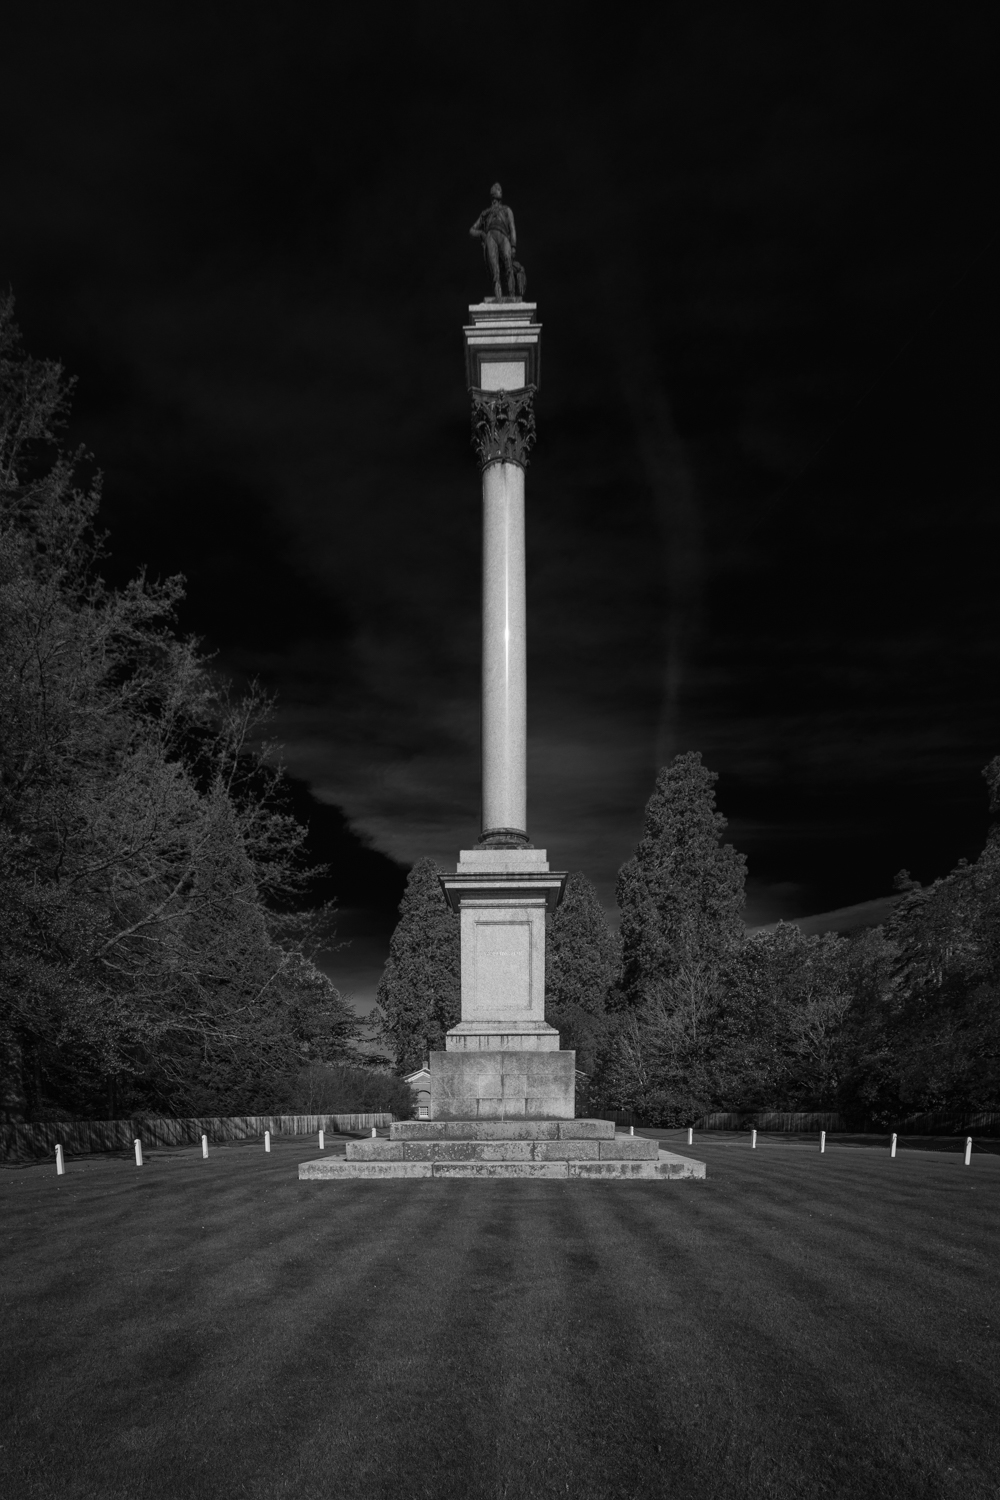 Wellington Memorial - black and white architectural photographers work in Hampshire by Rick McEvoy